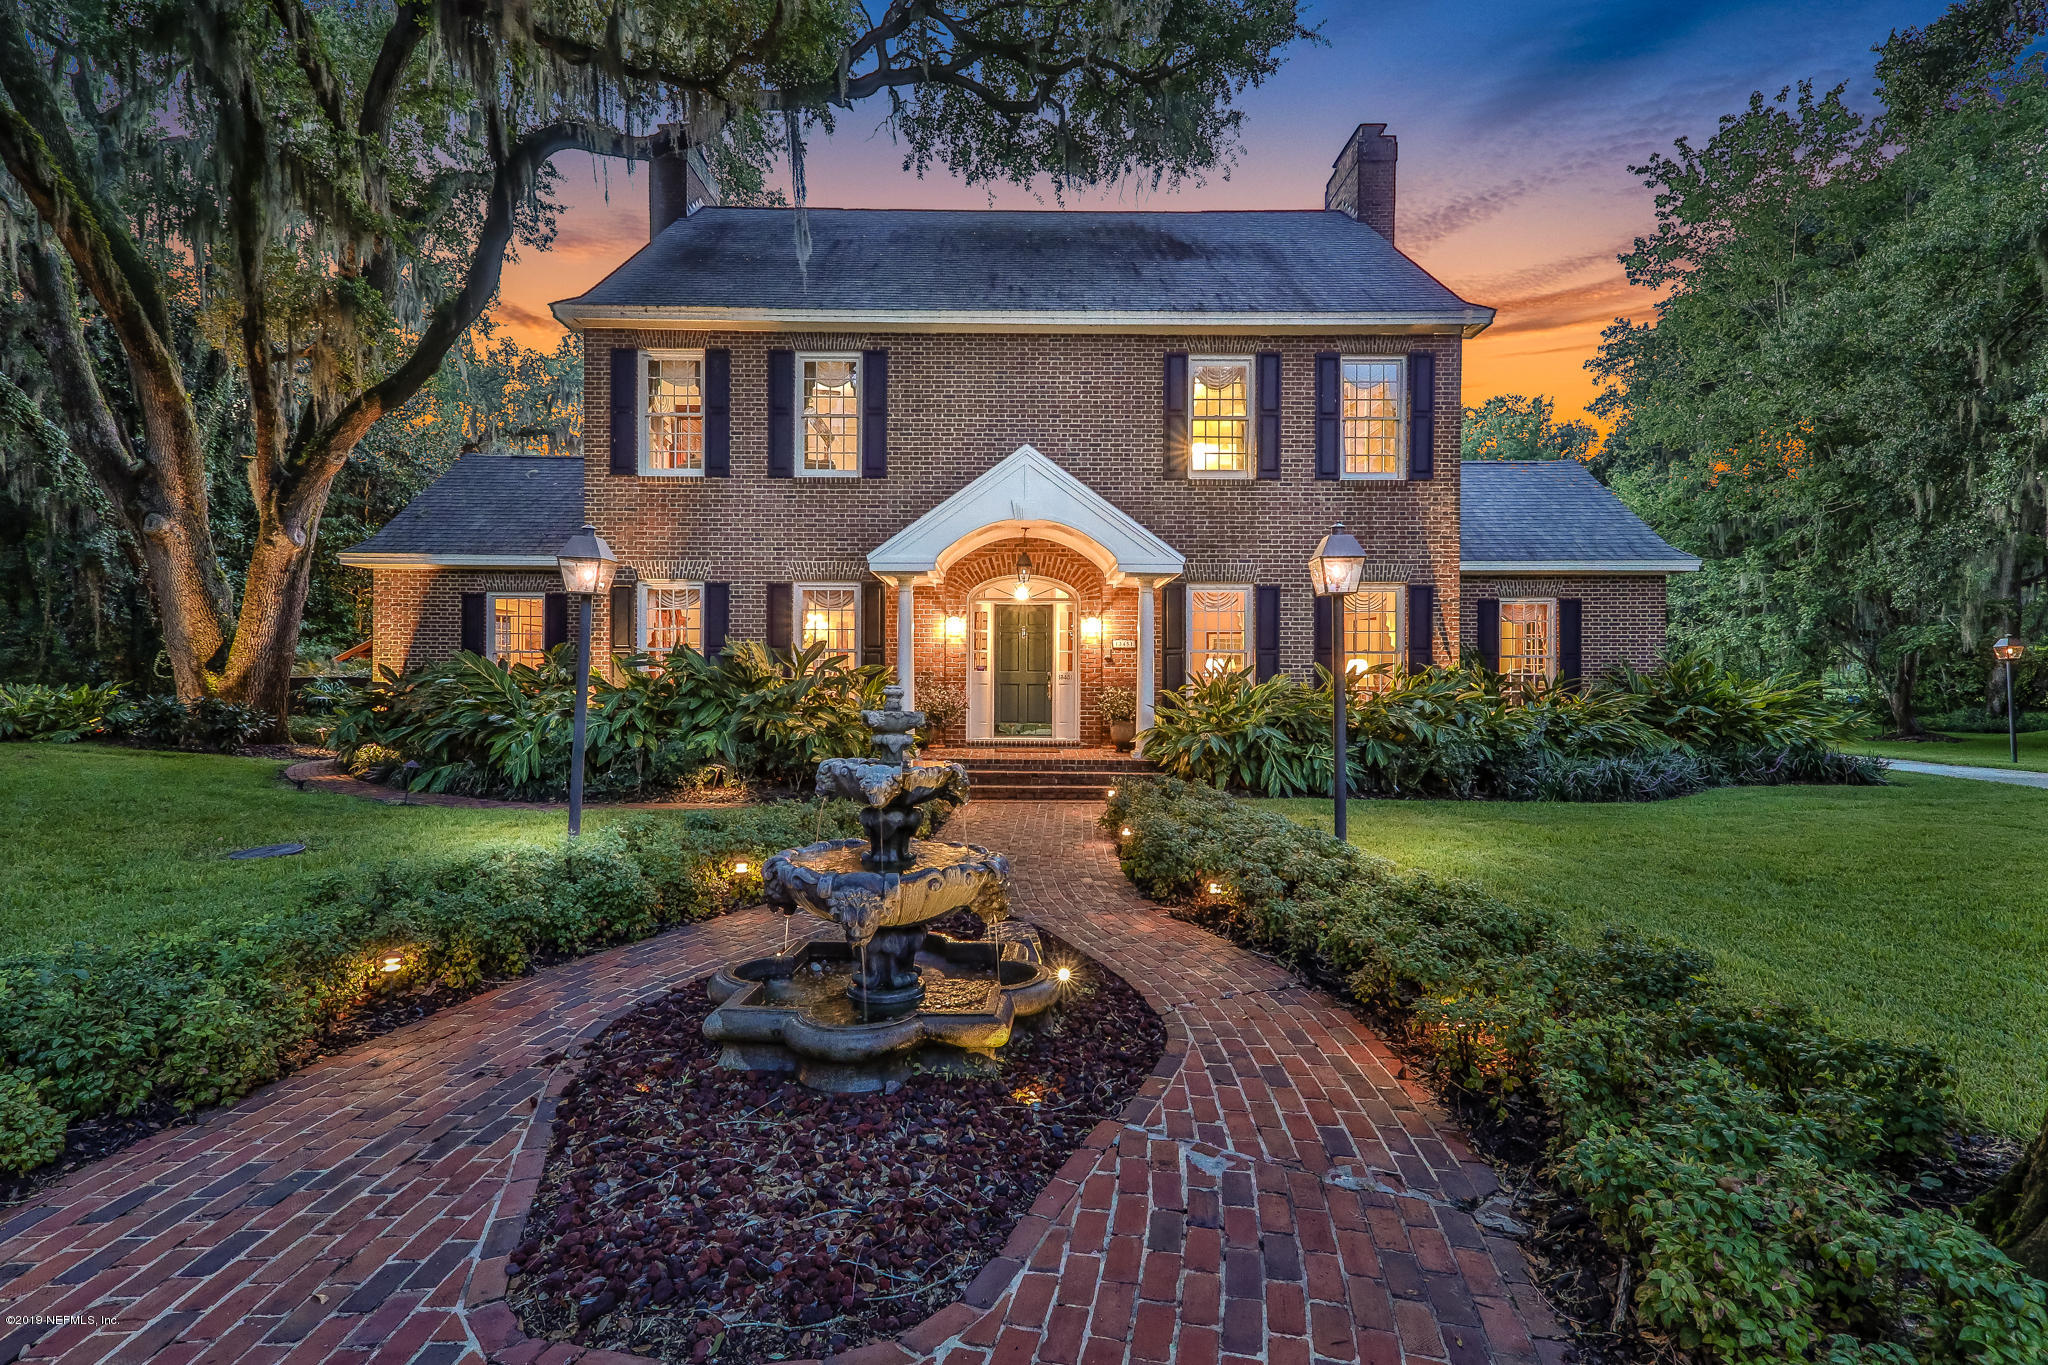 13451 OWL HOLLOW, JACKSONVILLE, FLORIDA 32223, 4 Bedrooms Bedrooms, ,4 BathroomsBathrooms,Residential - single family,For sale,OWL HOLLOW,1010022